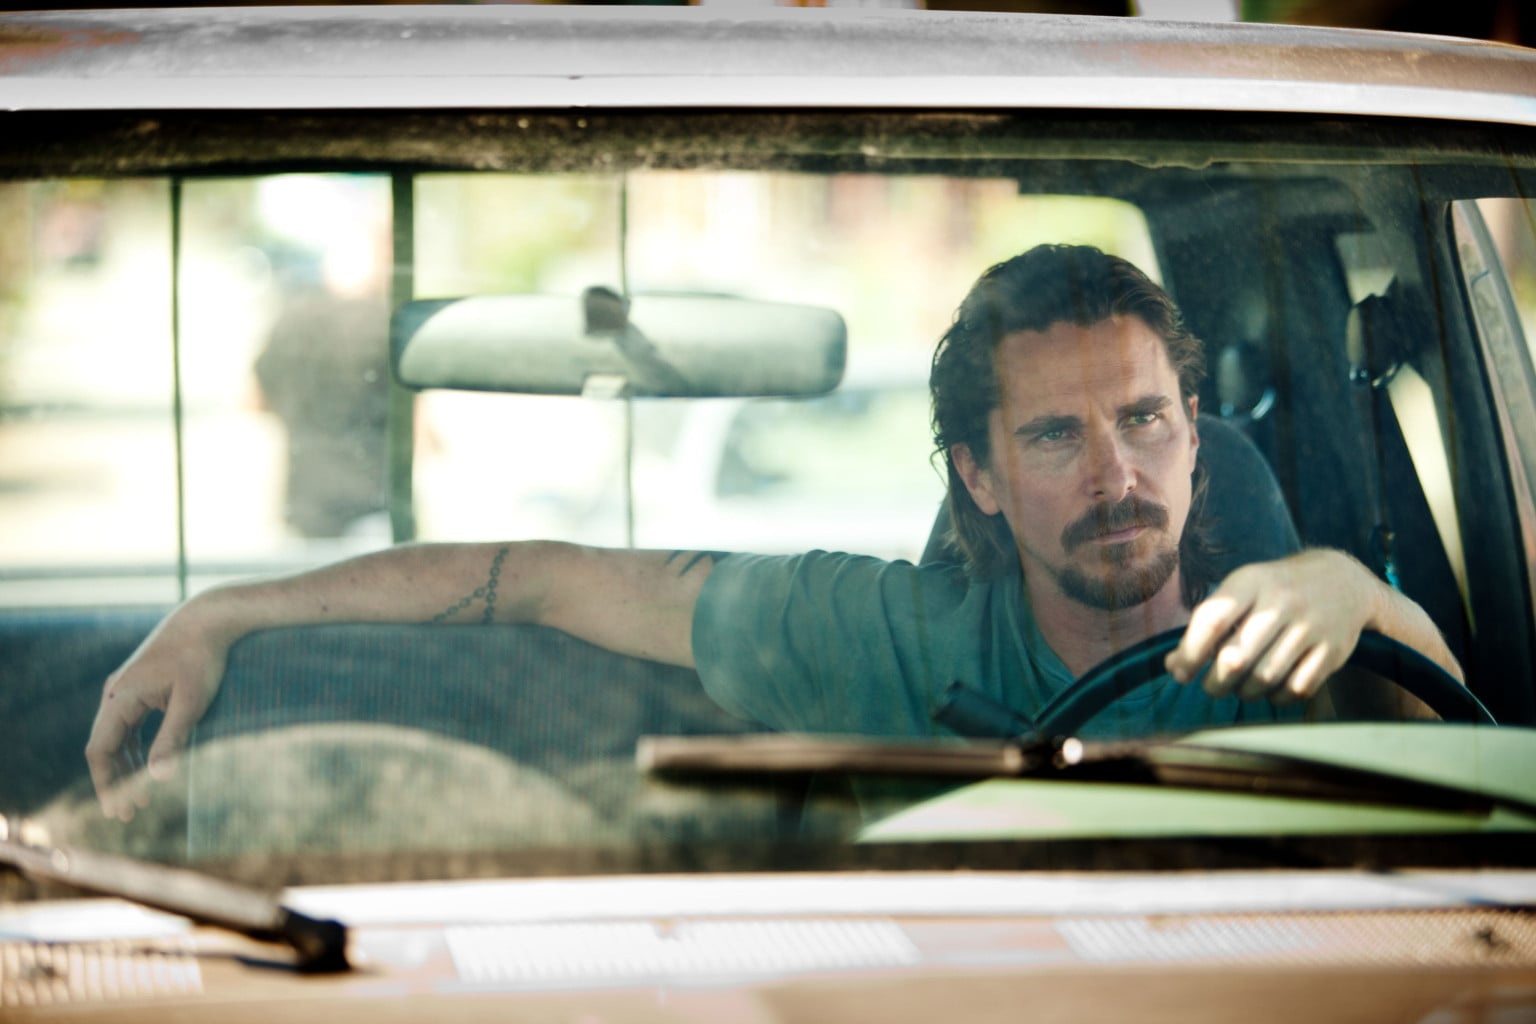 Out of the Furnace  What it's about: Christian Bale stars as a man investigating the disappearance of his younger brother (Casey Affleck) when the latter gets involved with a local crime boss (Woody Harrelson). Why we're interested: Bale and Affleck star alongside Zoe Saldana, Harrelson, and Forest Whitaker in what looks like a fantastically gritty thriller. Bale always turns in great performances, so I'm looking forward to seeing him seek some vigilante justice. When it opens: Dec. 6 Watch the trailer for Out of the Furnace.  Source: Relativity Media